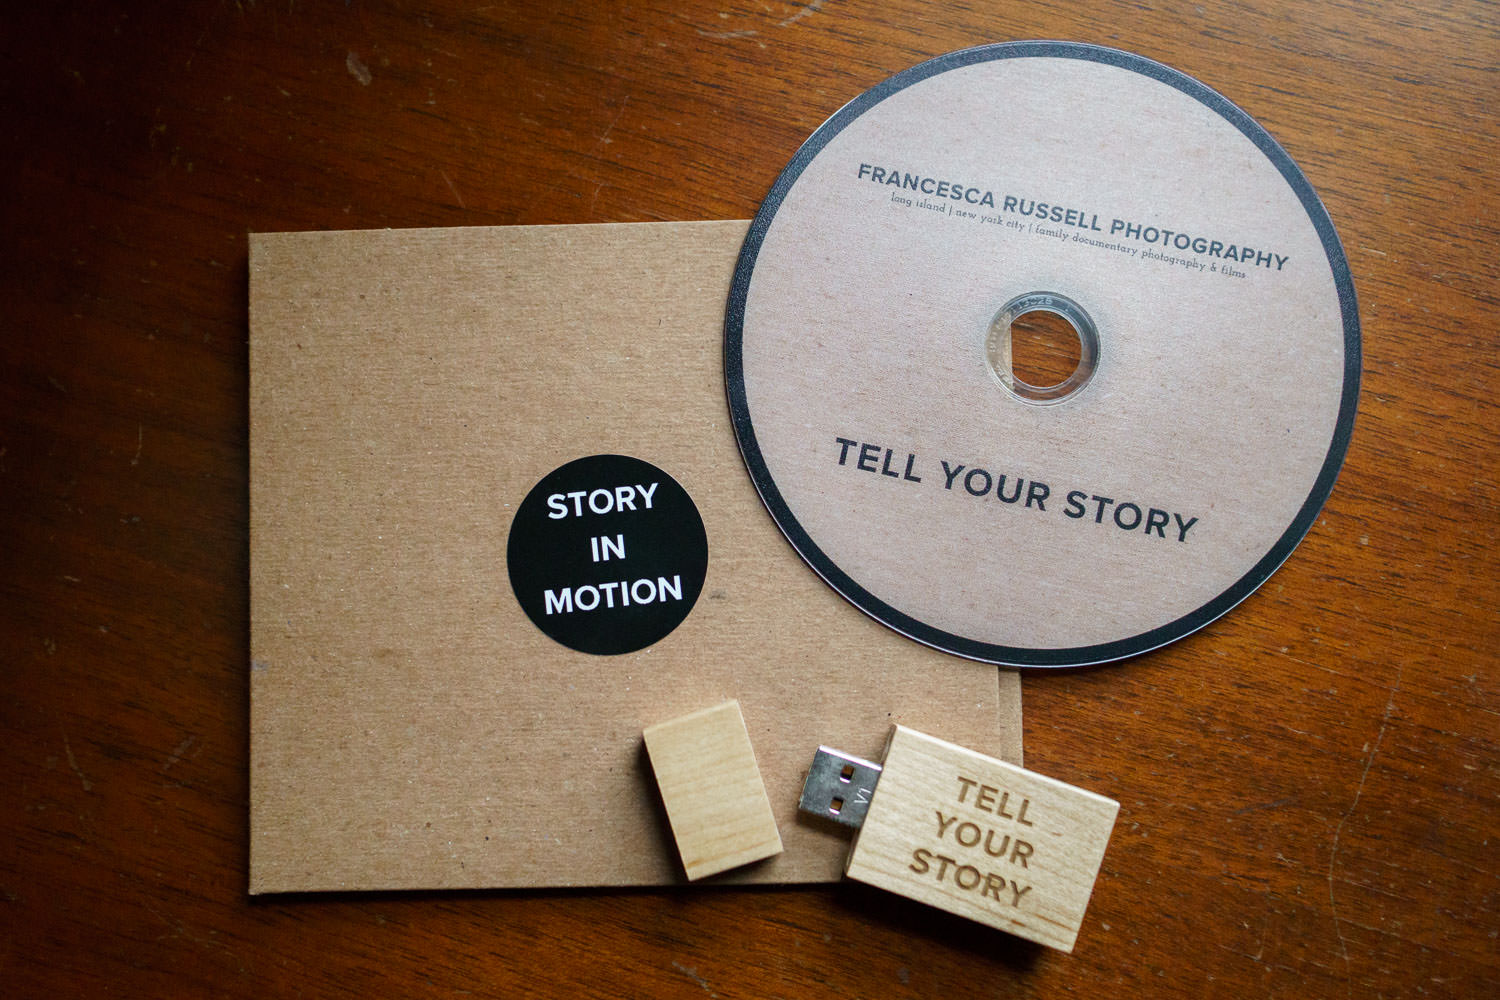 DVD and USB cases for Francesca Russell Photography & Films.